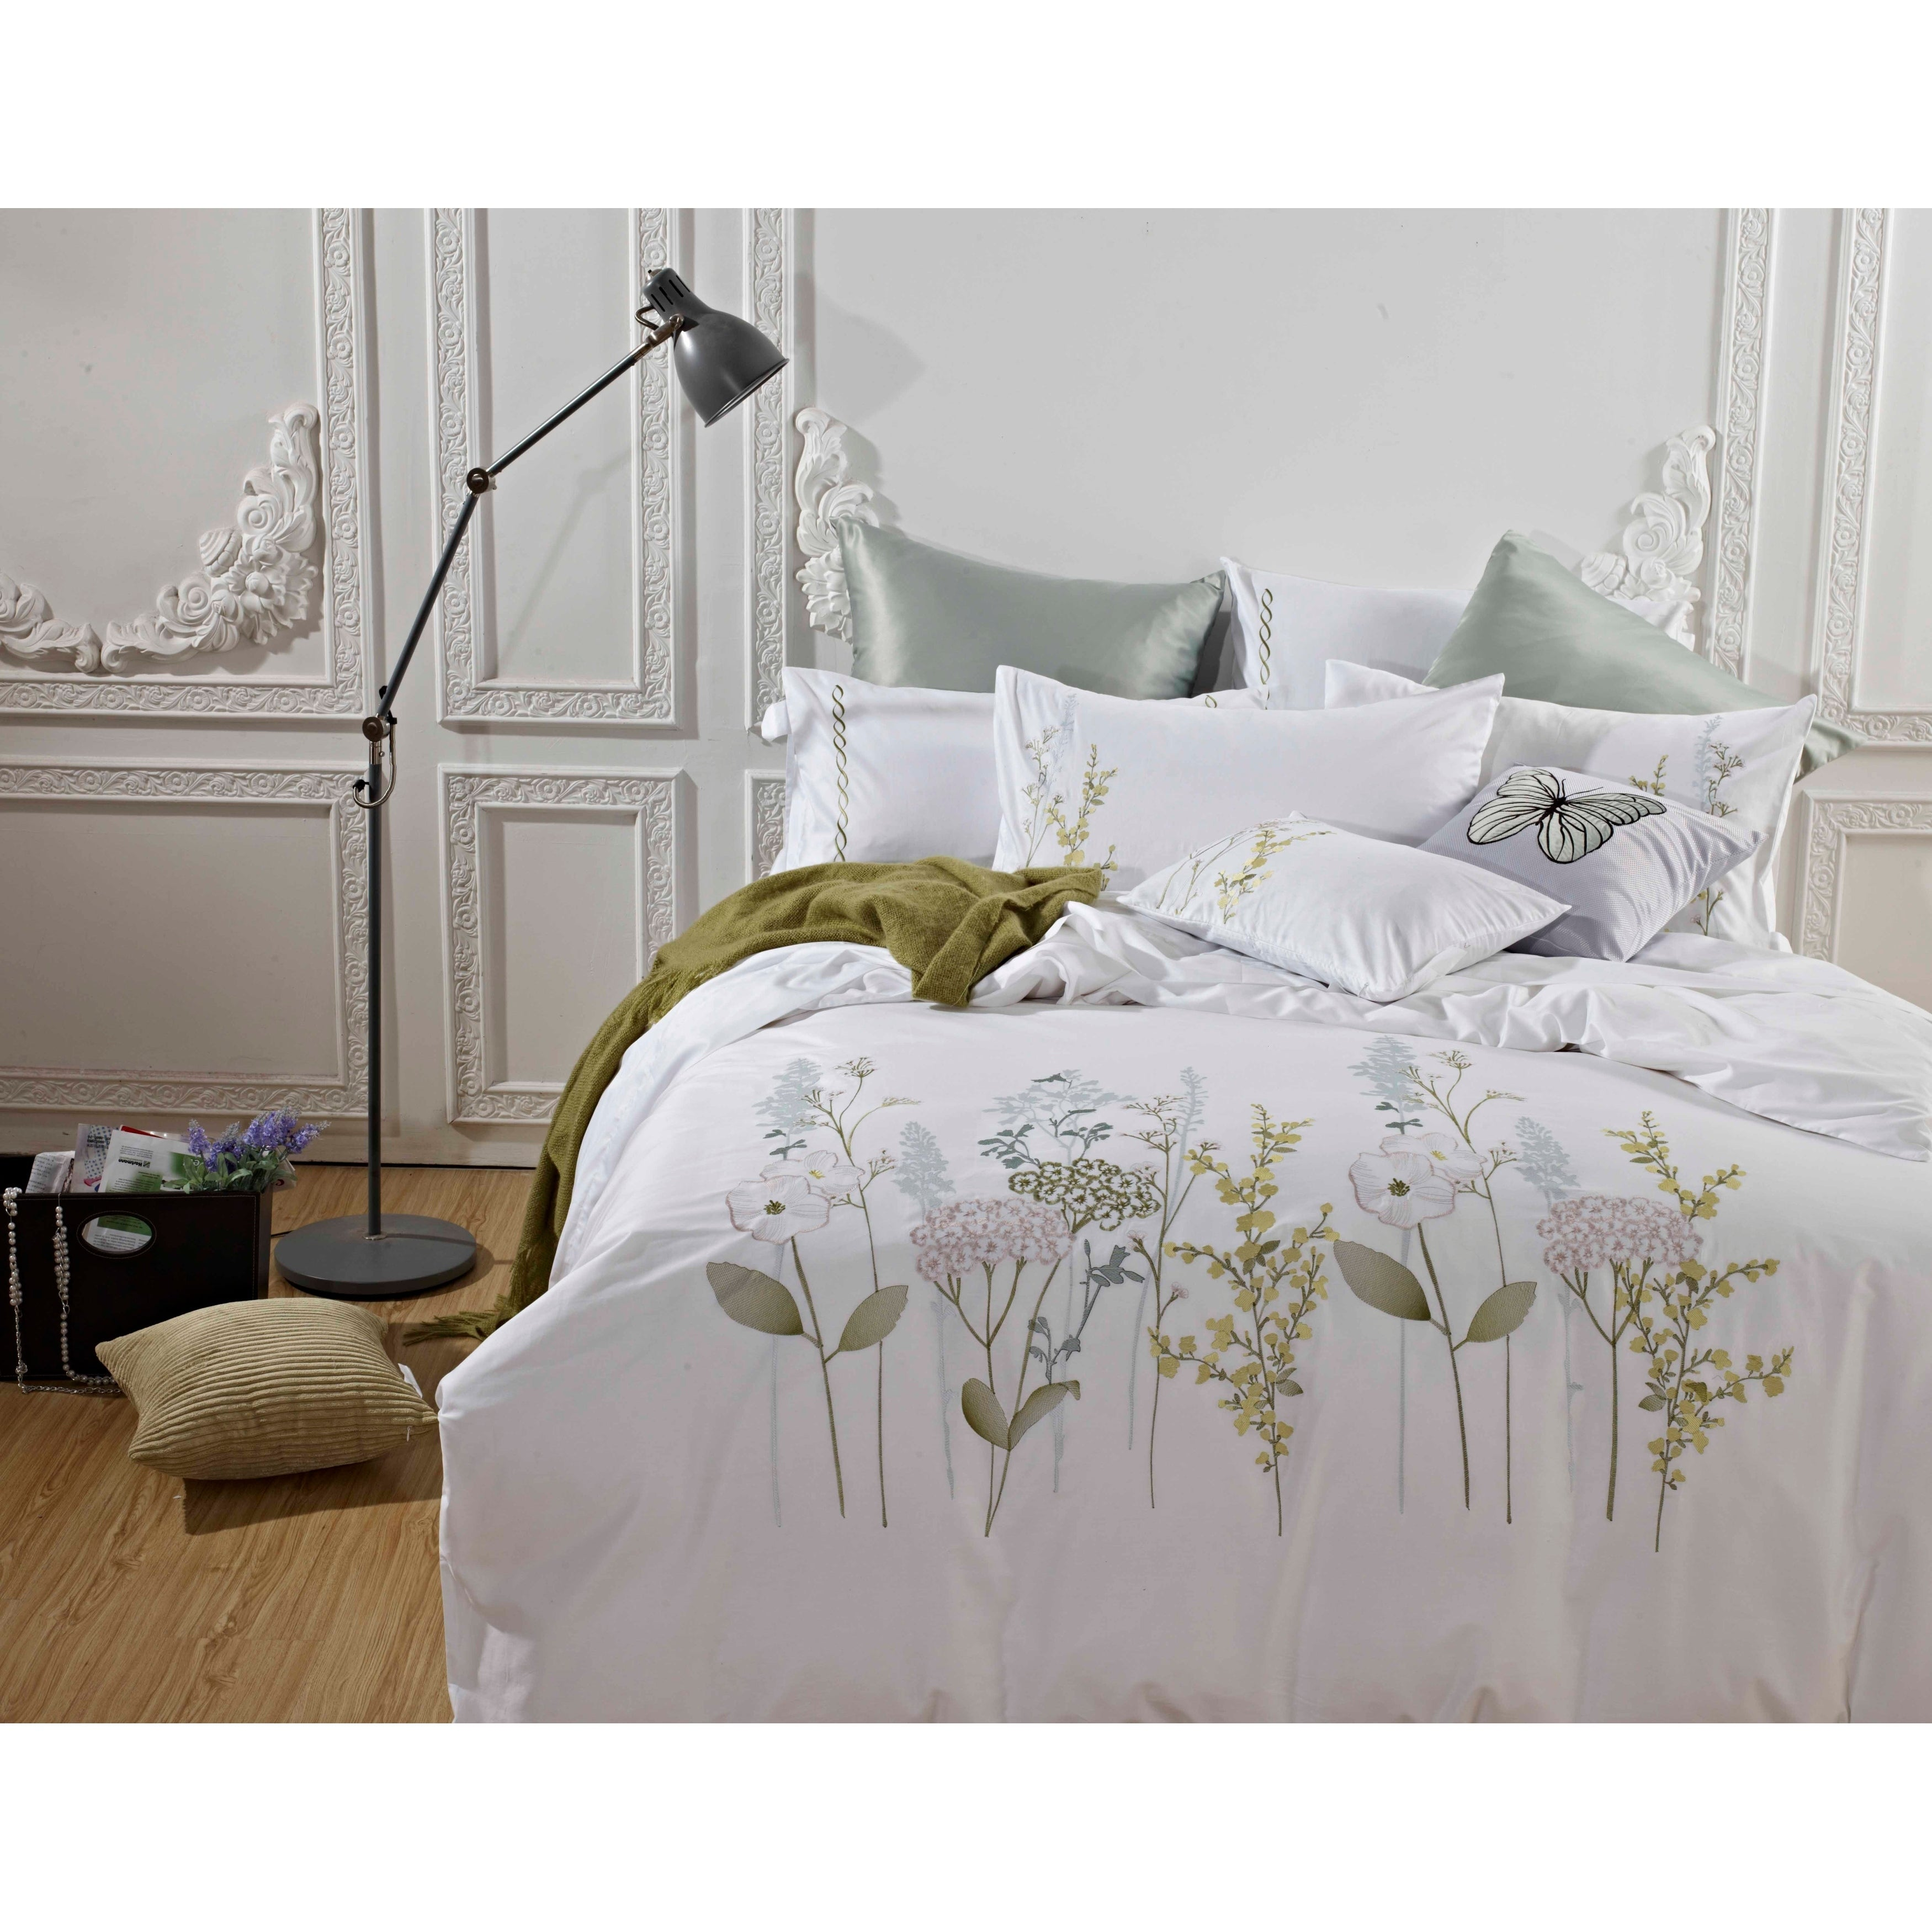 Broderie Ensemble Housse De Couette Collection Spring Blossom Embroidery Duvet Set On Sale Overstock 24035710 Green 3 Piece King